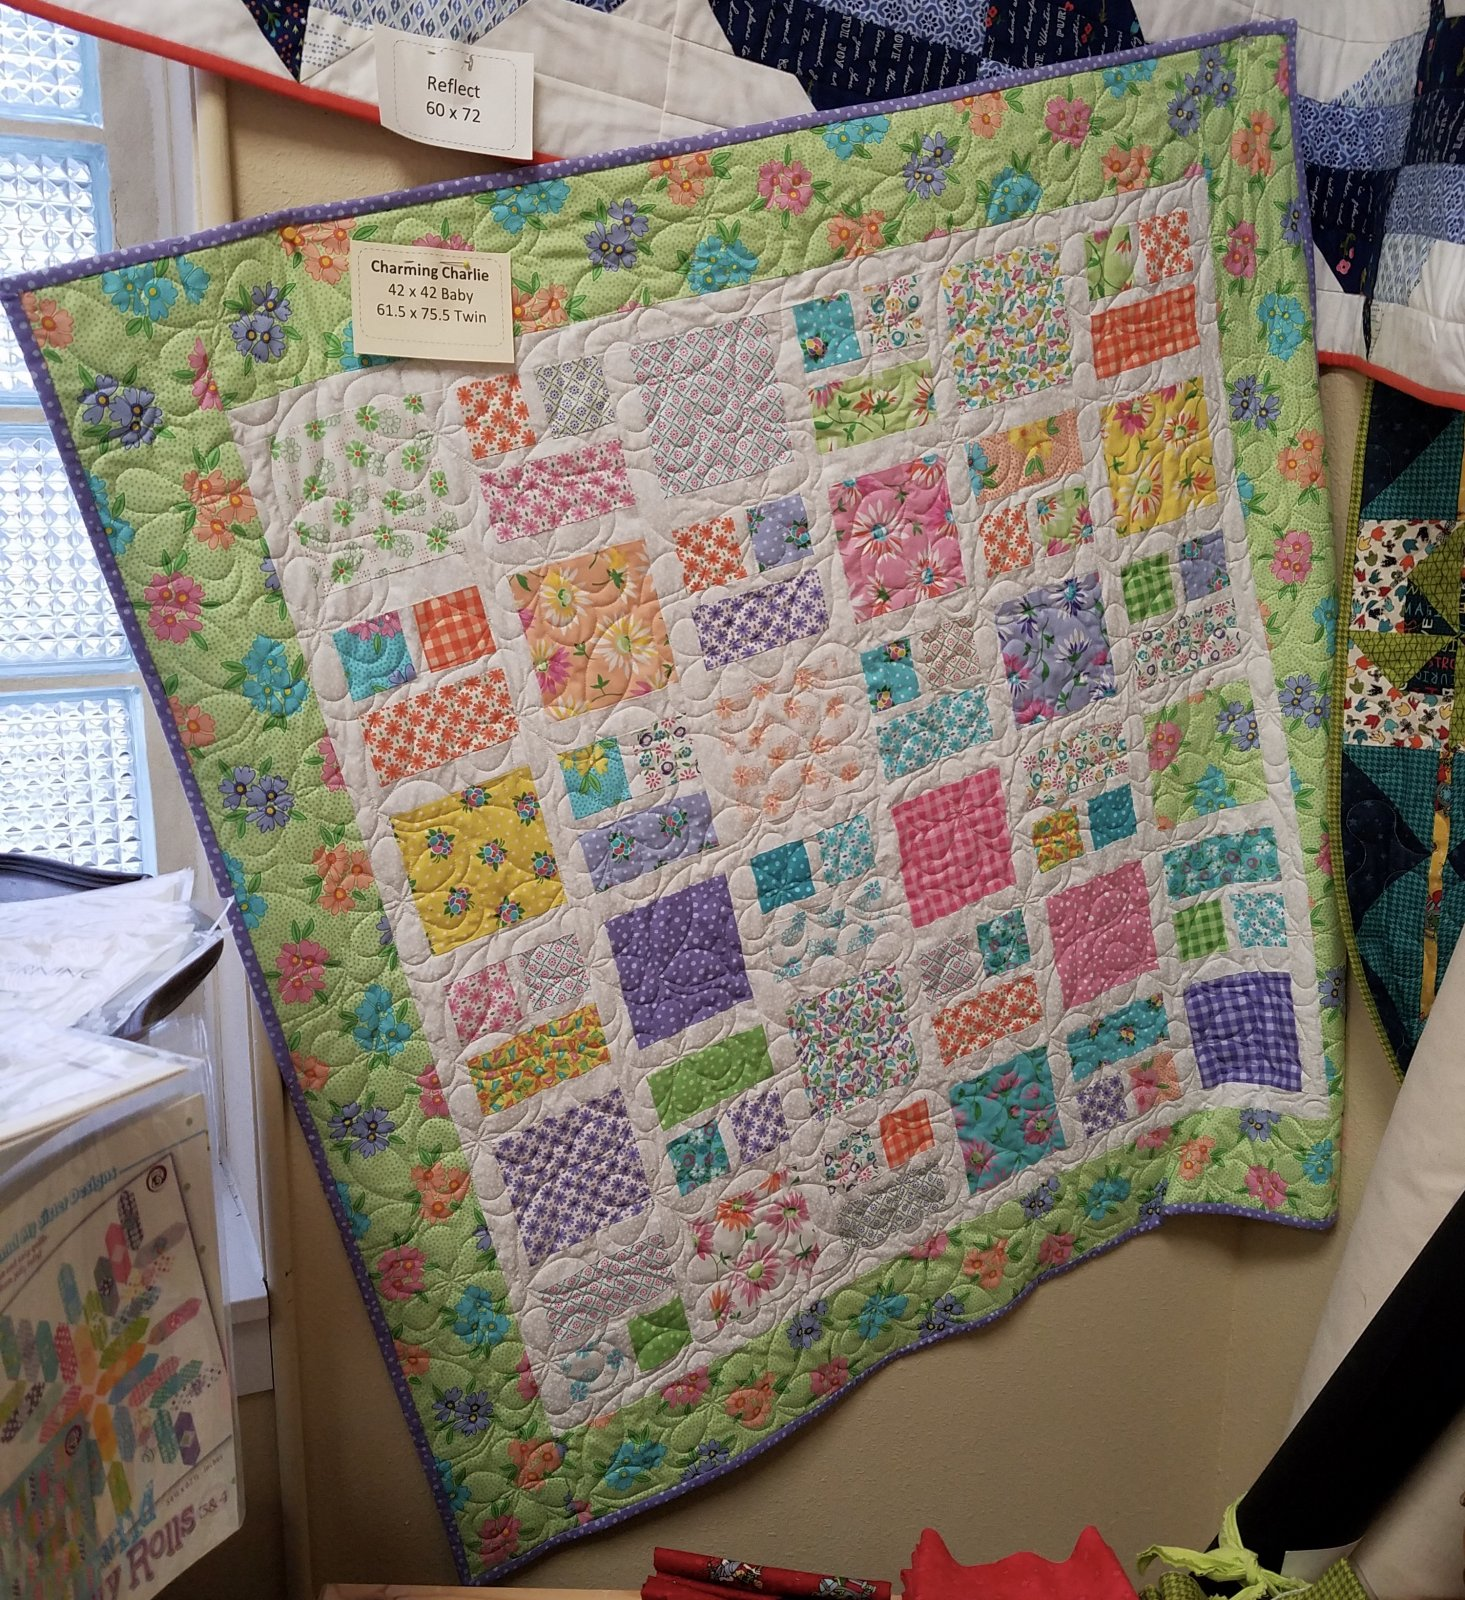 Charming Charlie/Good Day Baby Quilt Kit